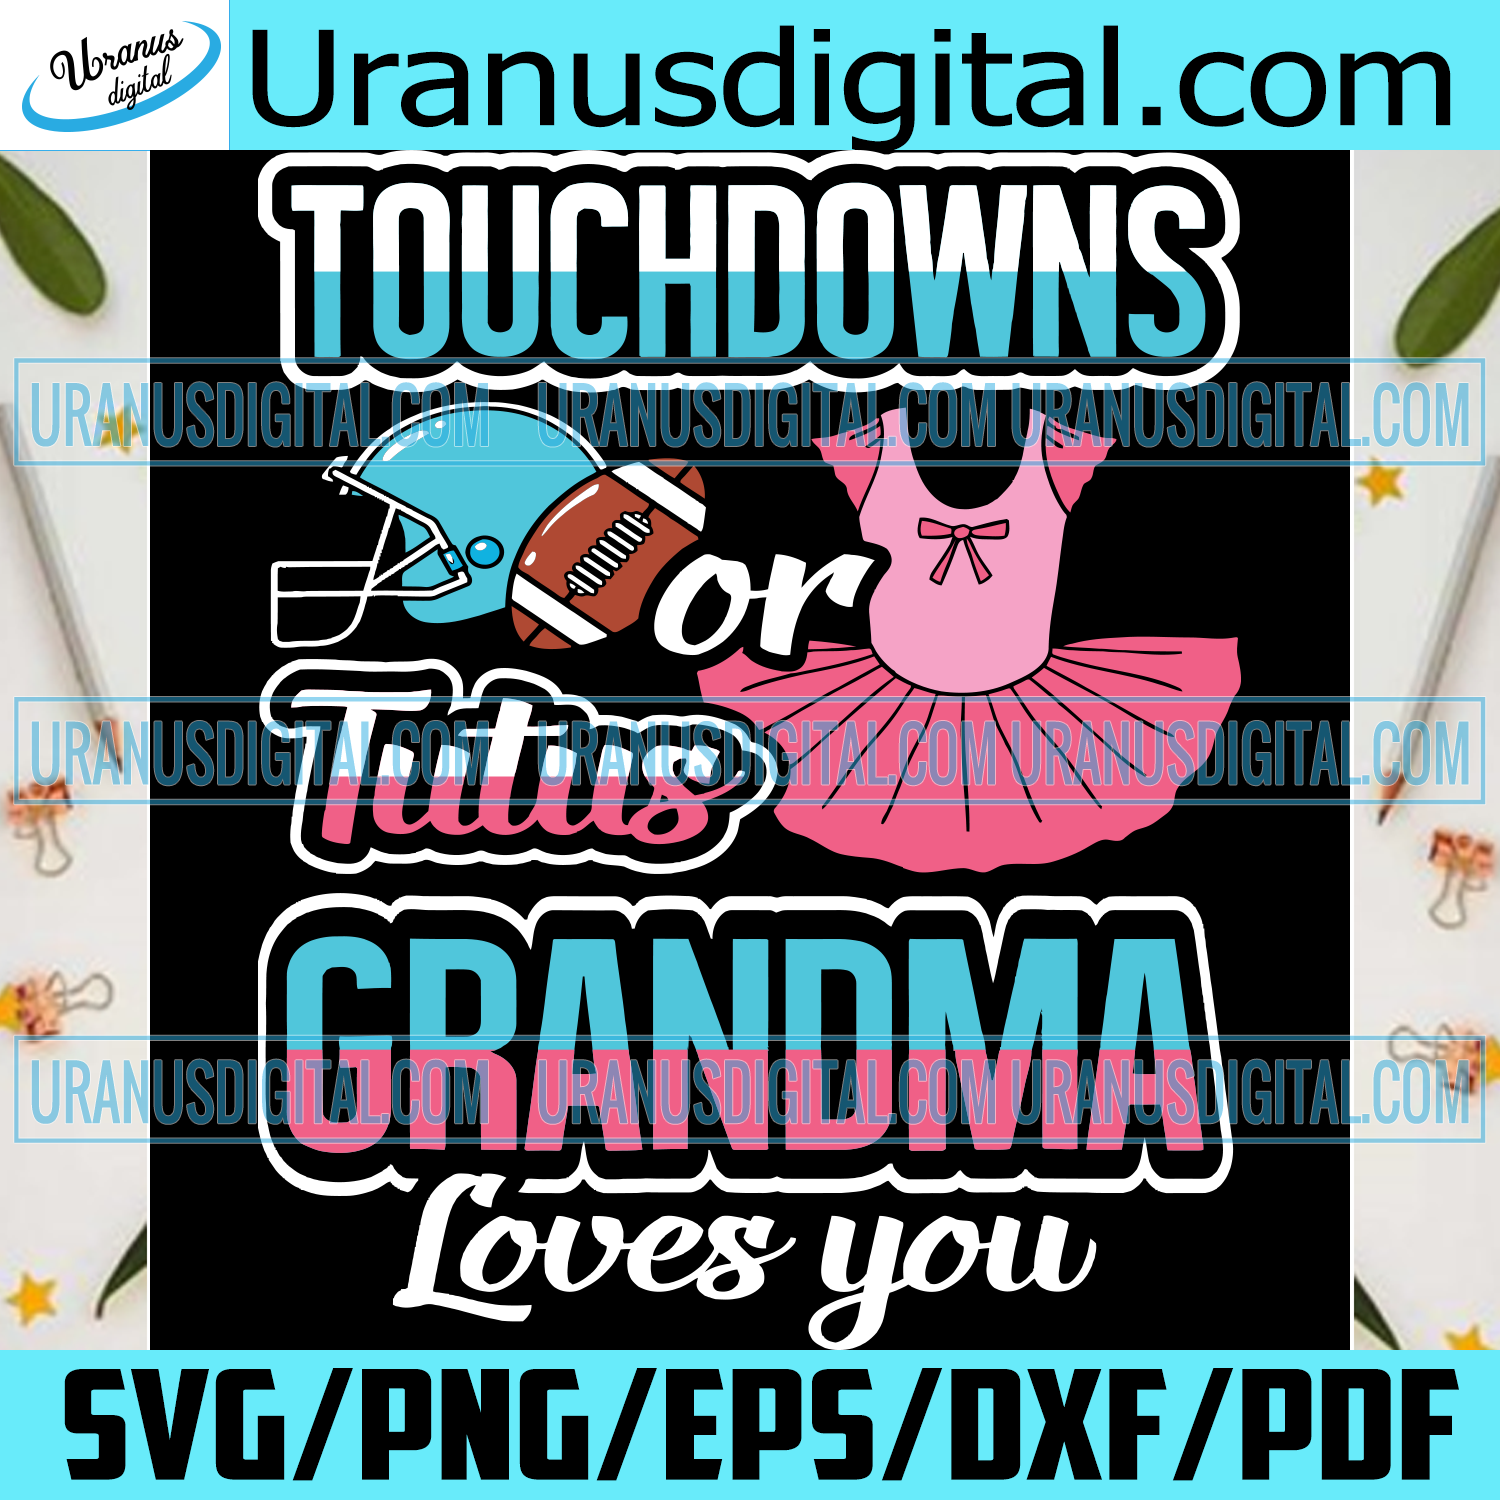 Touchdowns Or Tutus Grandma Loves You Svg, Trending Svg, Svg, Gender Reveal Svg, Touchdowns Svg, Tutus Svg, Grandskids Svg, Nephew Svg, Niece Svg, Grandma Svg, Baby Gender Svg, Boy Or Girl, He Or She